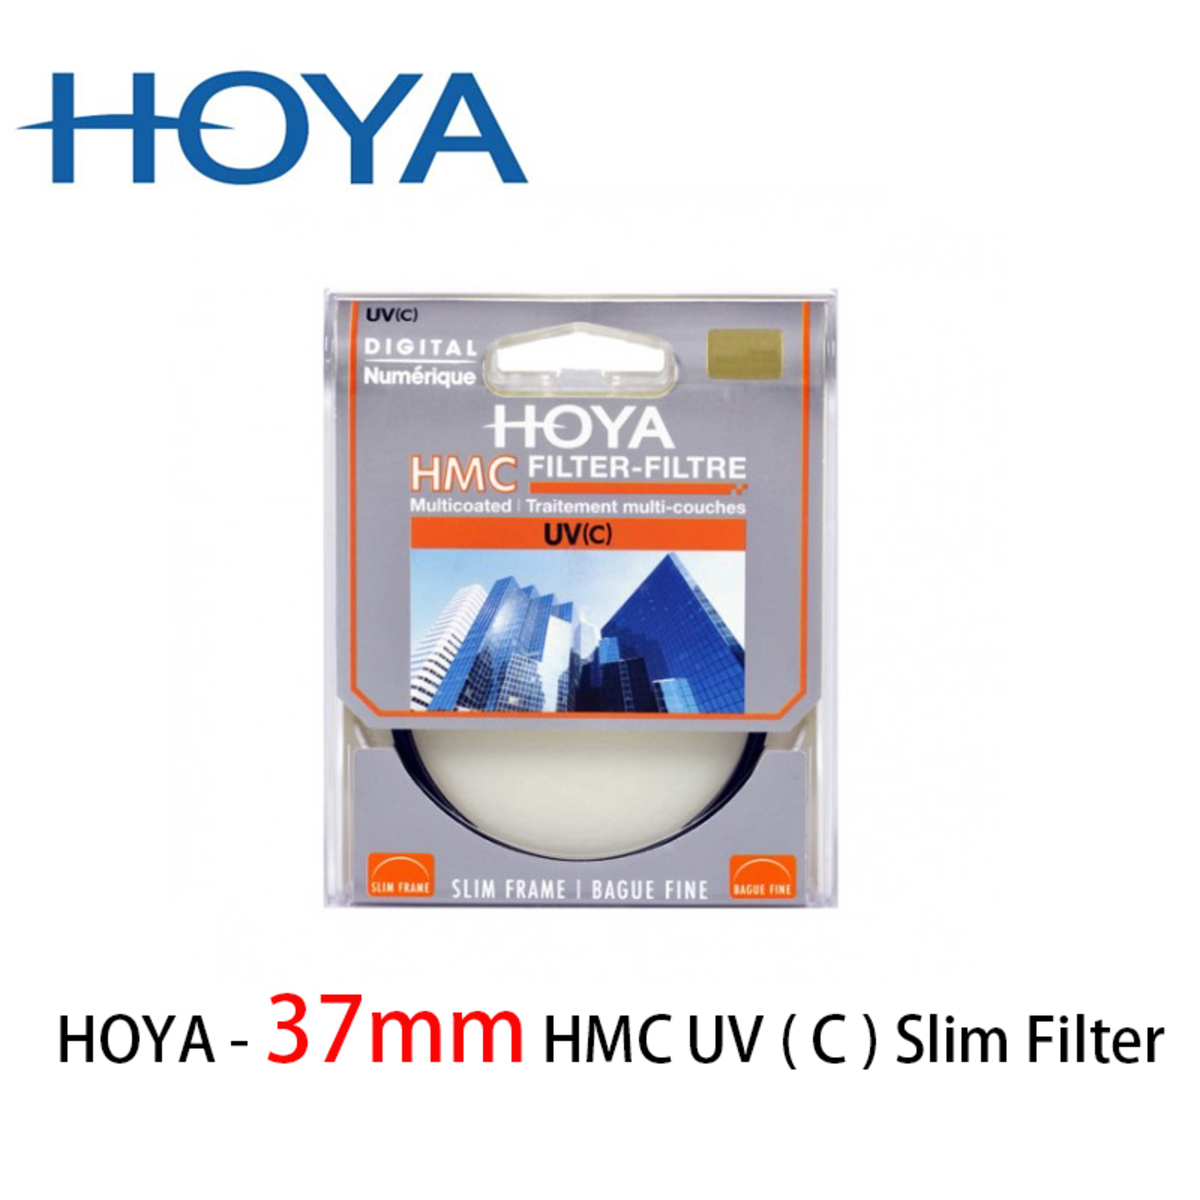 37mm HMC UV ( C ) Slim Filte